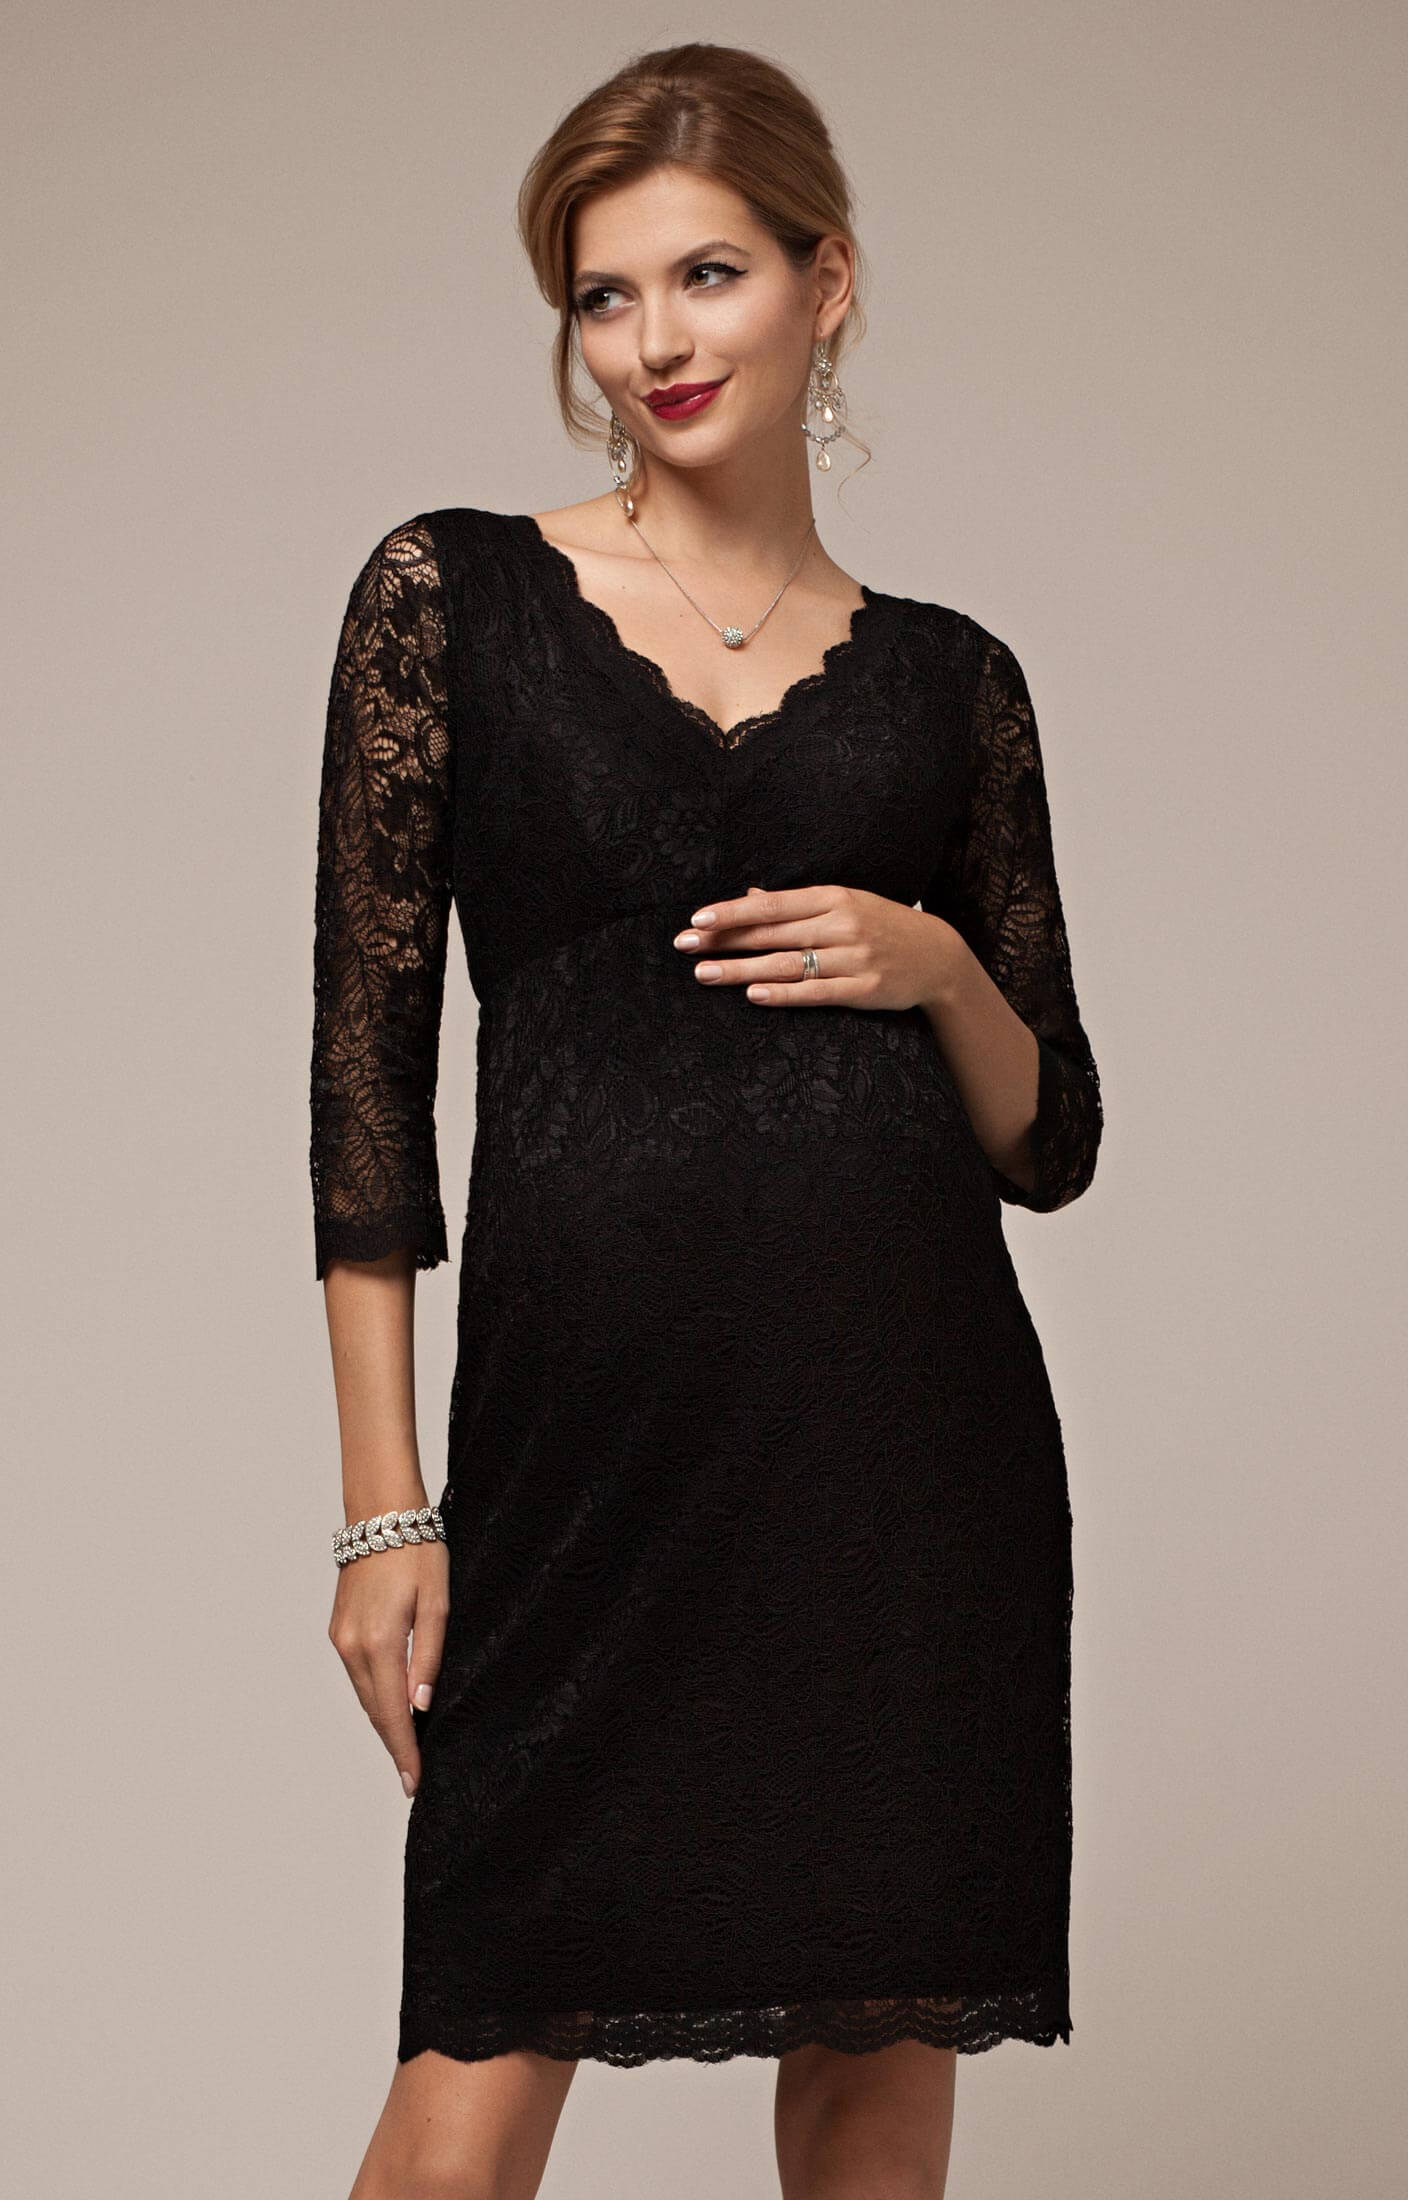 Chloe lace maternity dress black maternity wedding dresses chloe lace maternity dress black by tiffany rose ombrellifo Images